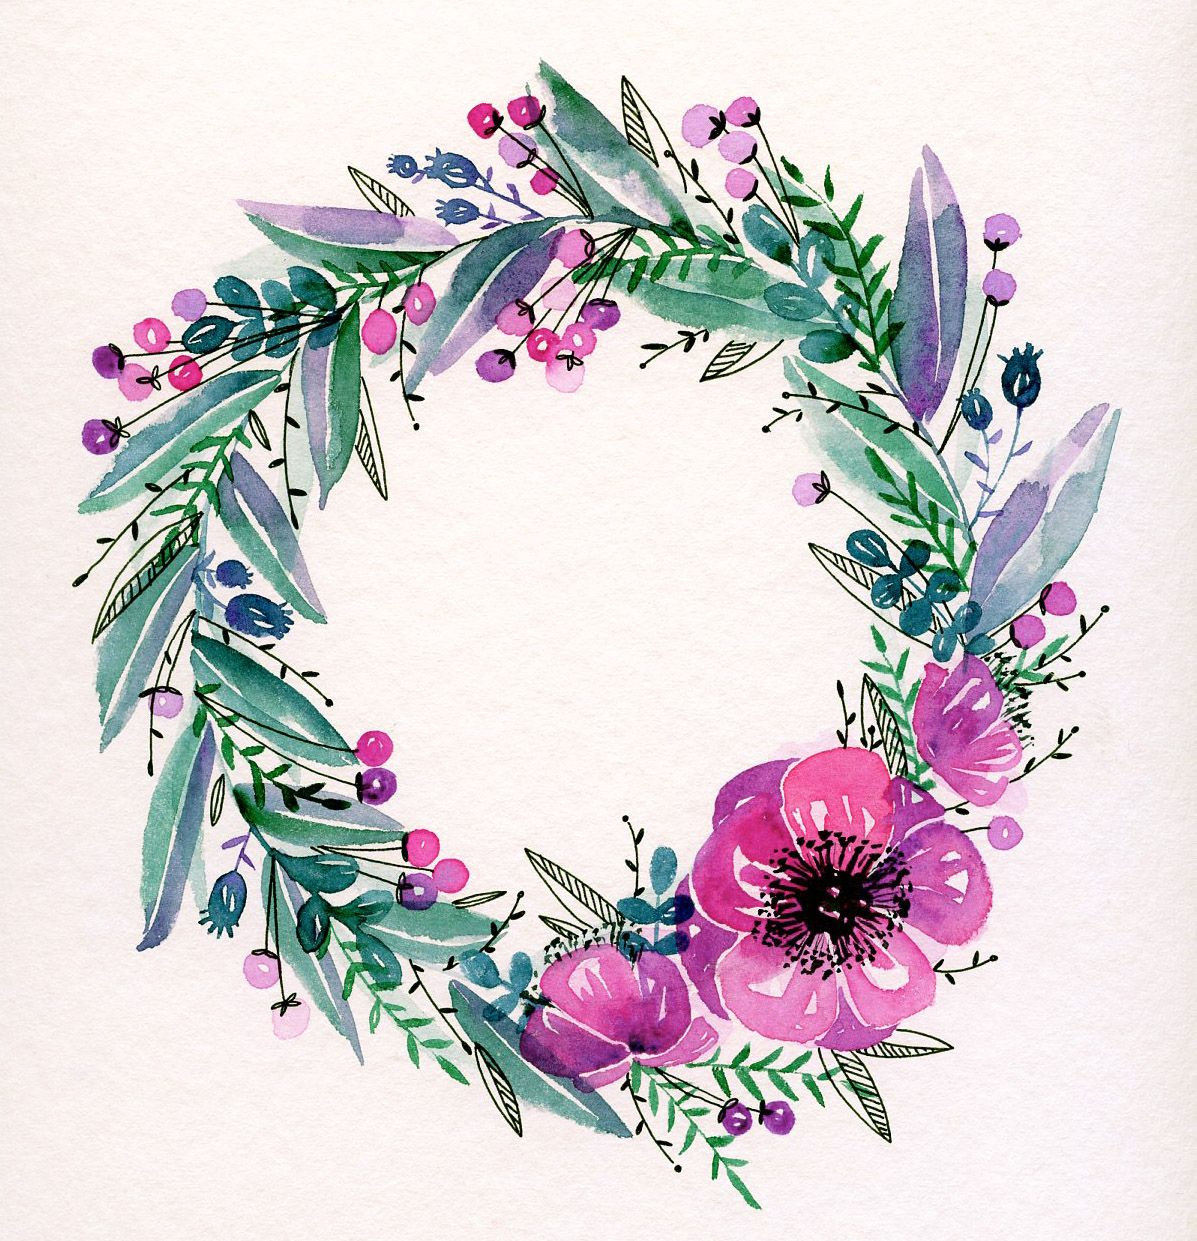 Watercolor Aquarelle Illustration Hygge Flowers Couronne